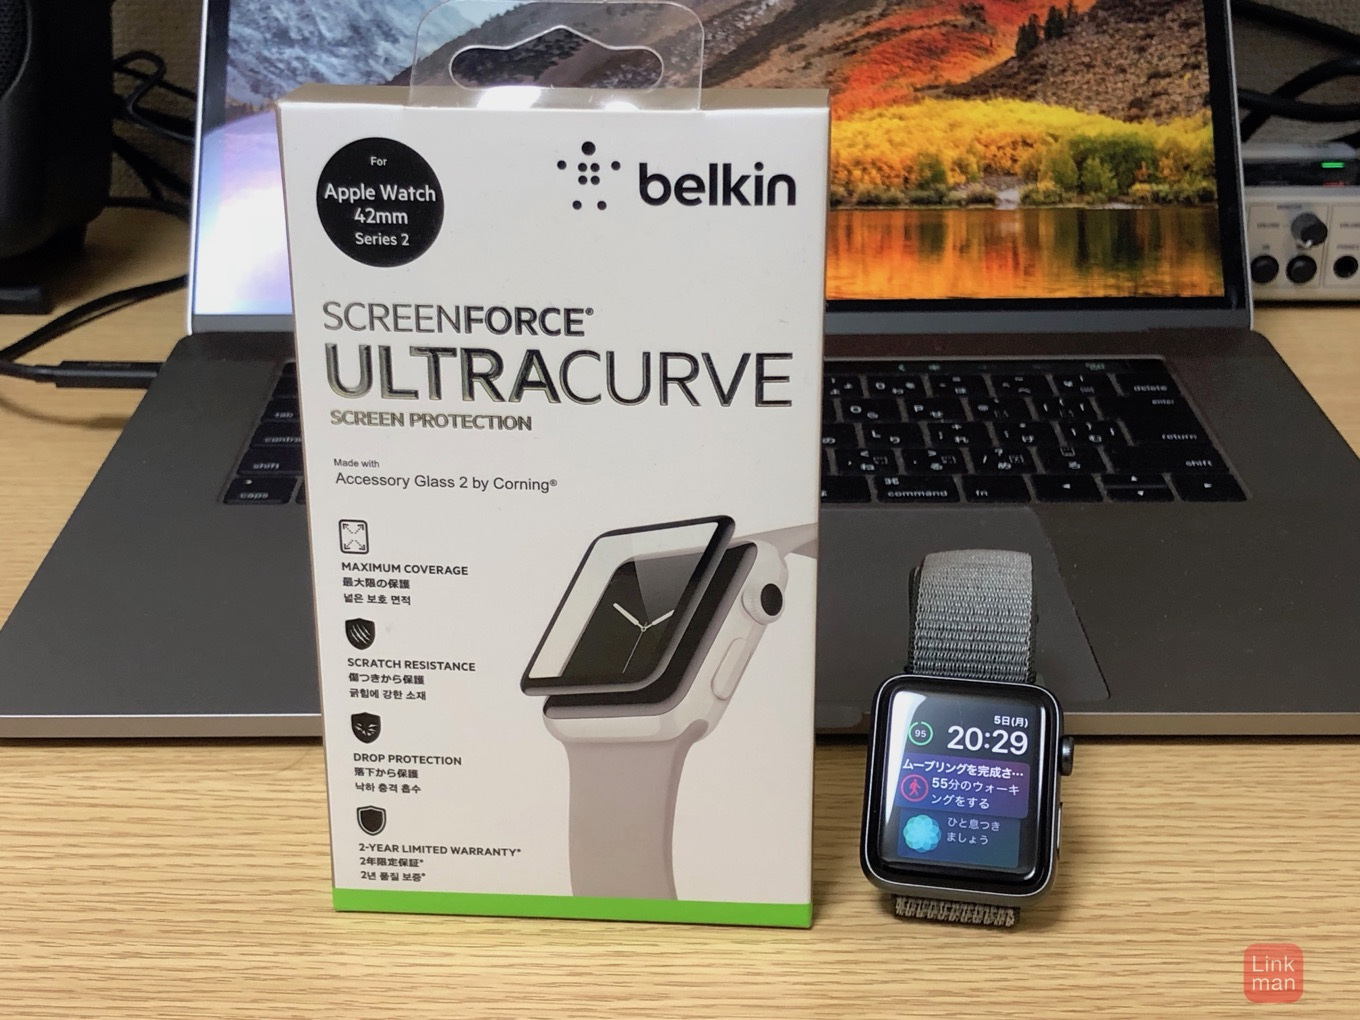 belkin ScreenForce UltraCurveスクリーンプロテクター1